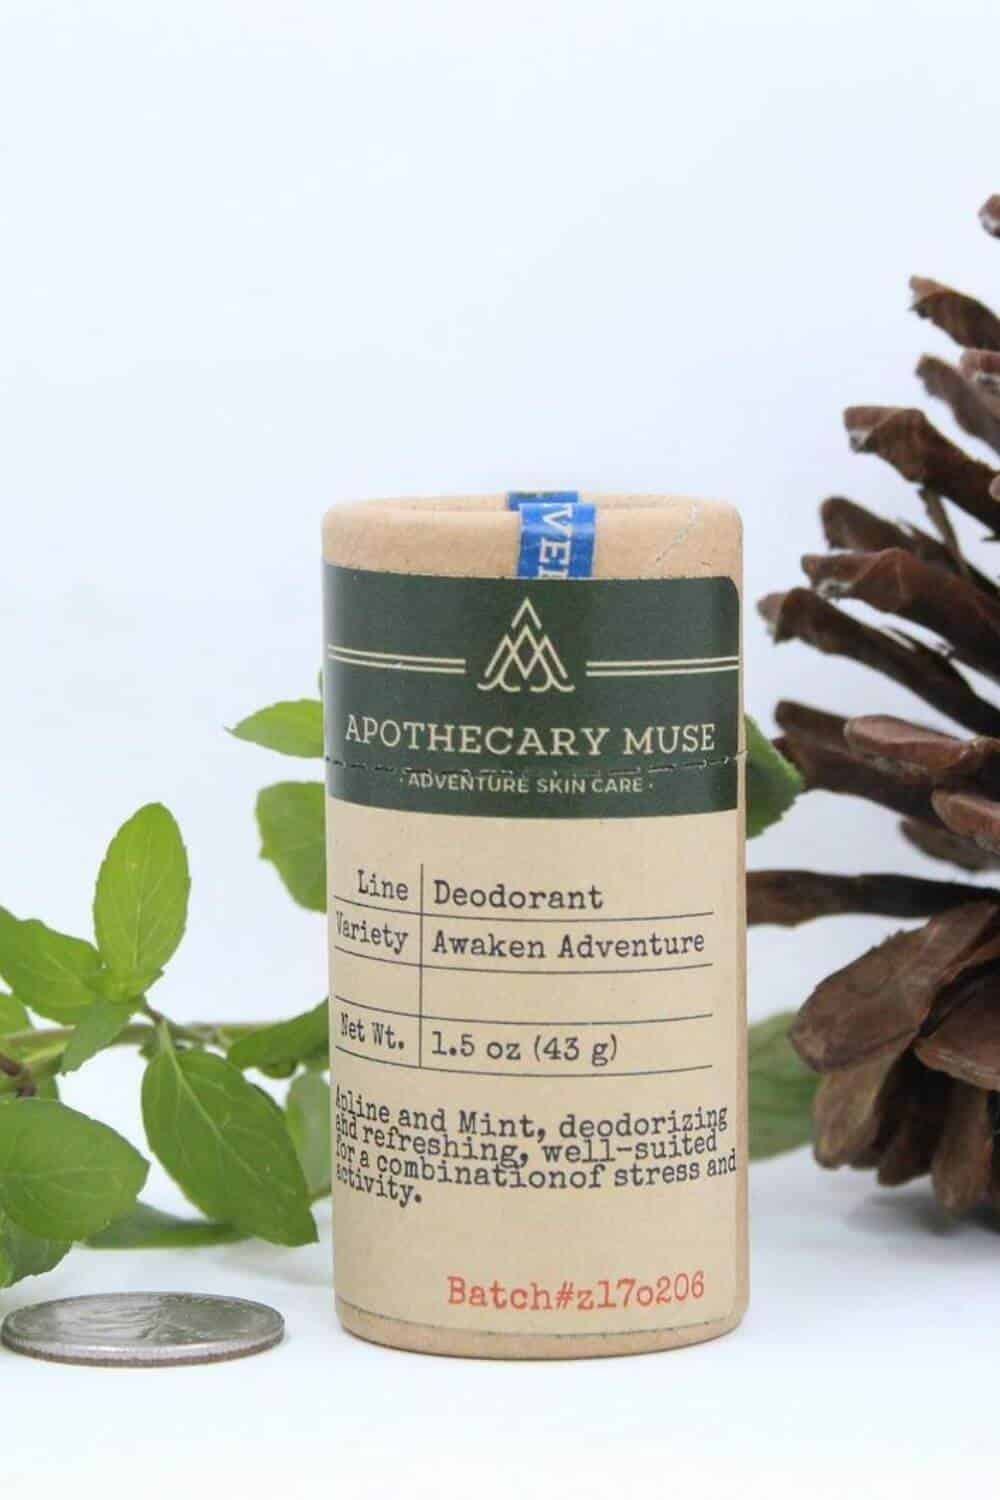 Looking for a zero waste deodorant alternative? Here's our list of options for stink-free sustainable pits Image by Apothecary Muse #zerowastedeodorant #sustainablejungle